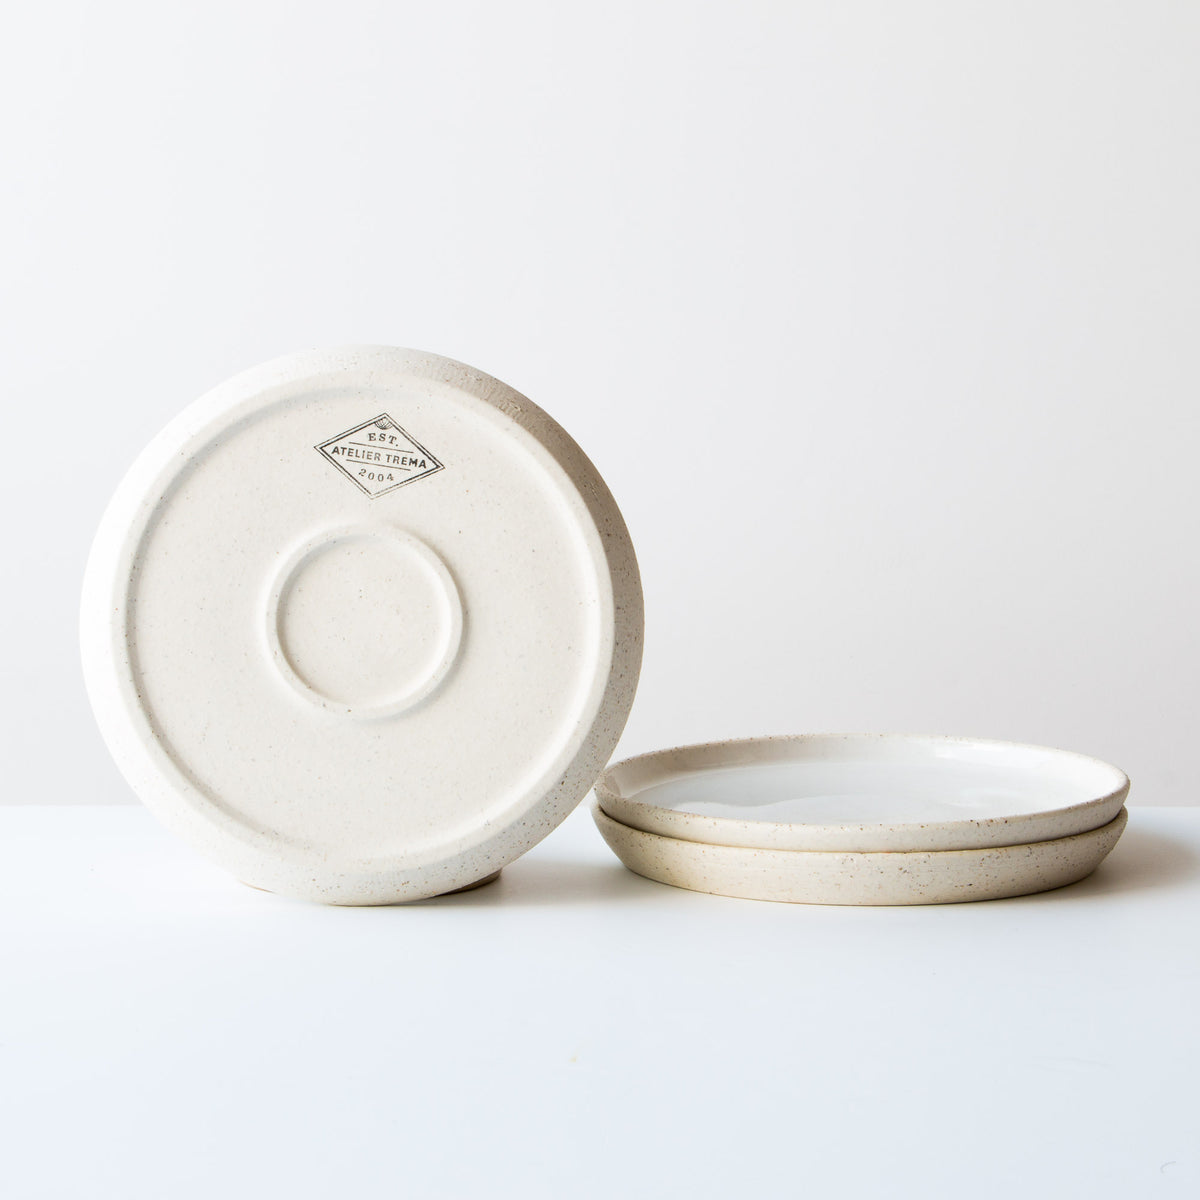 Rear View - Oatmeal Clay - Soft White Glaze - Small Ceramic Plate - Handmade in Quebec, Canada